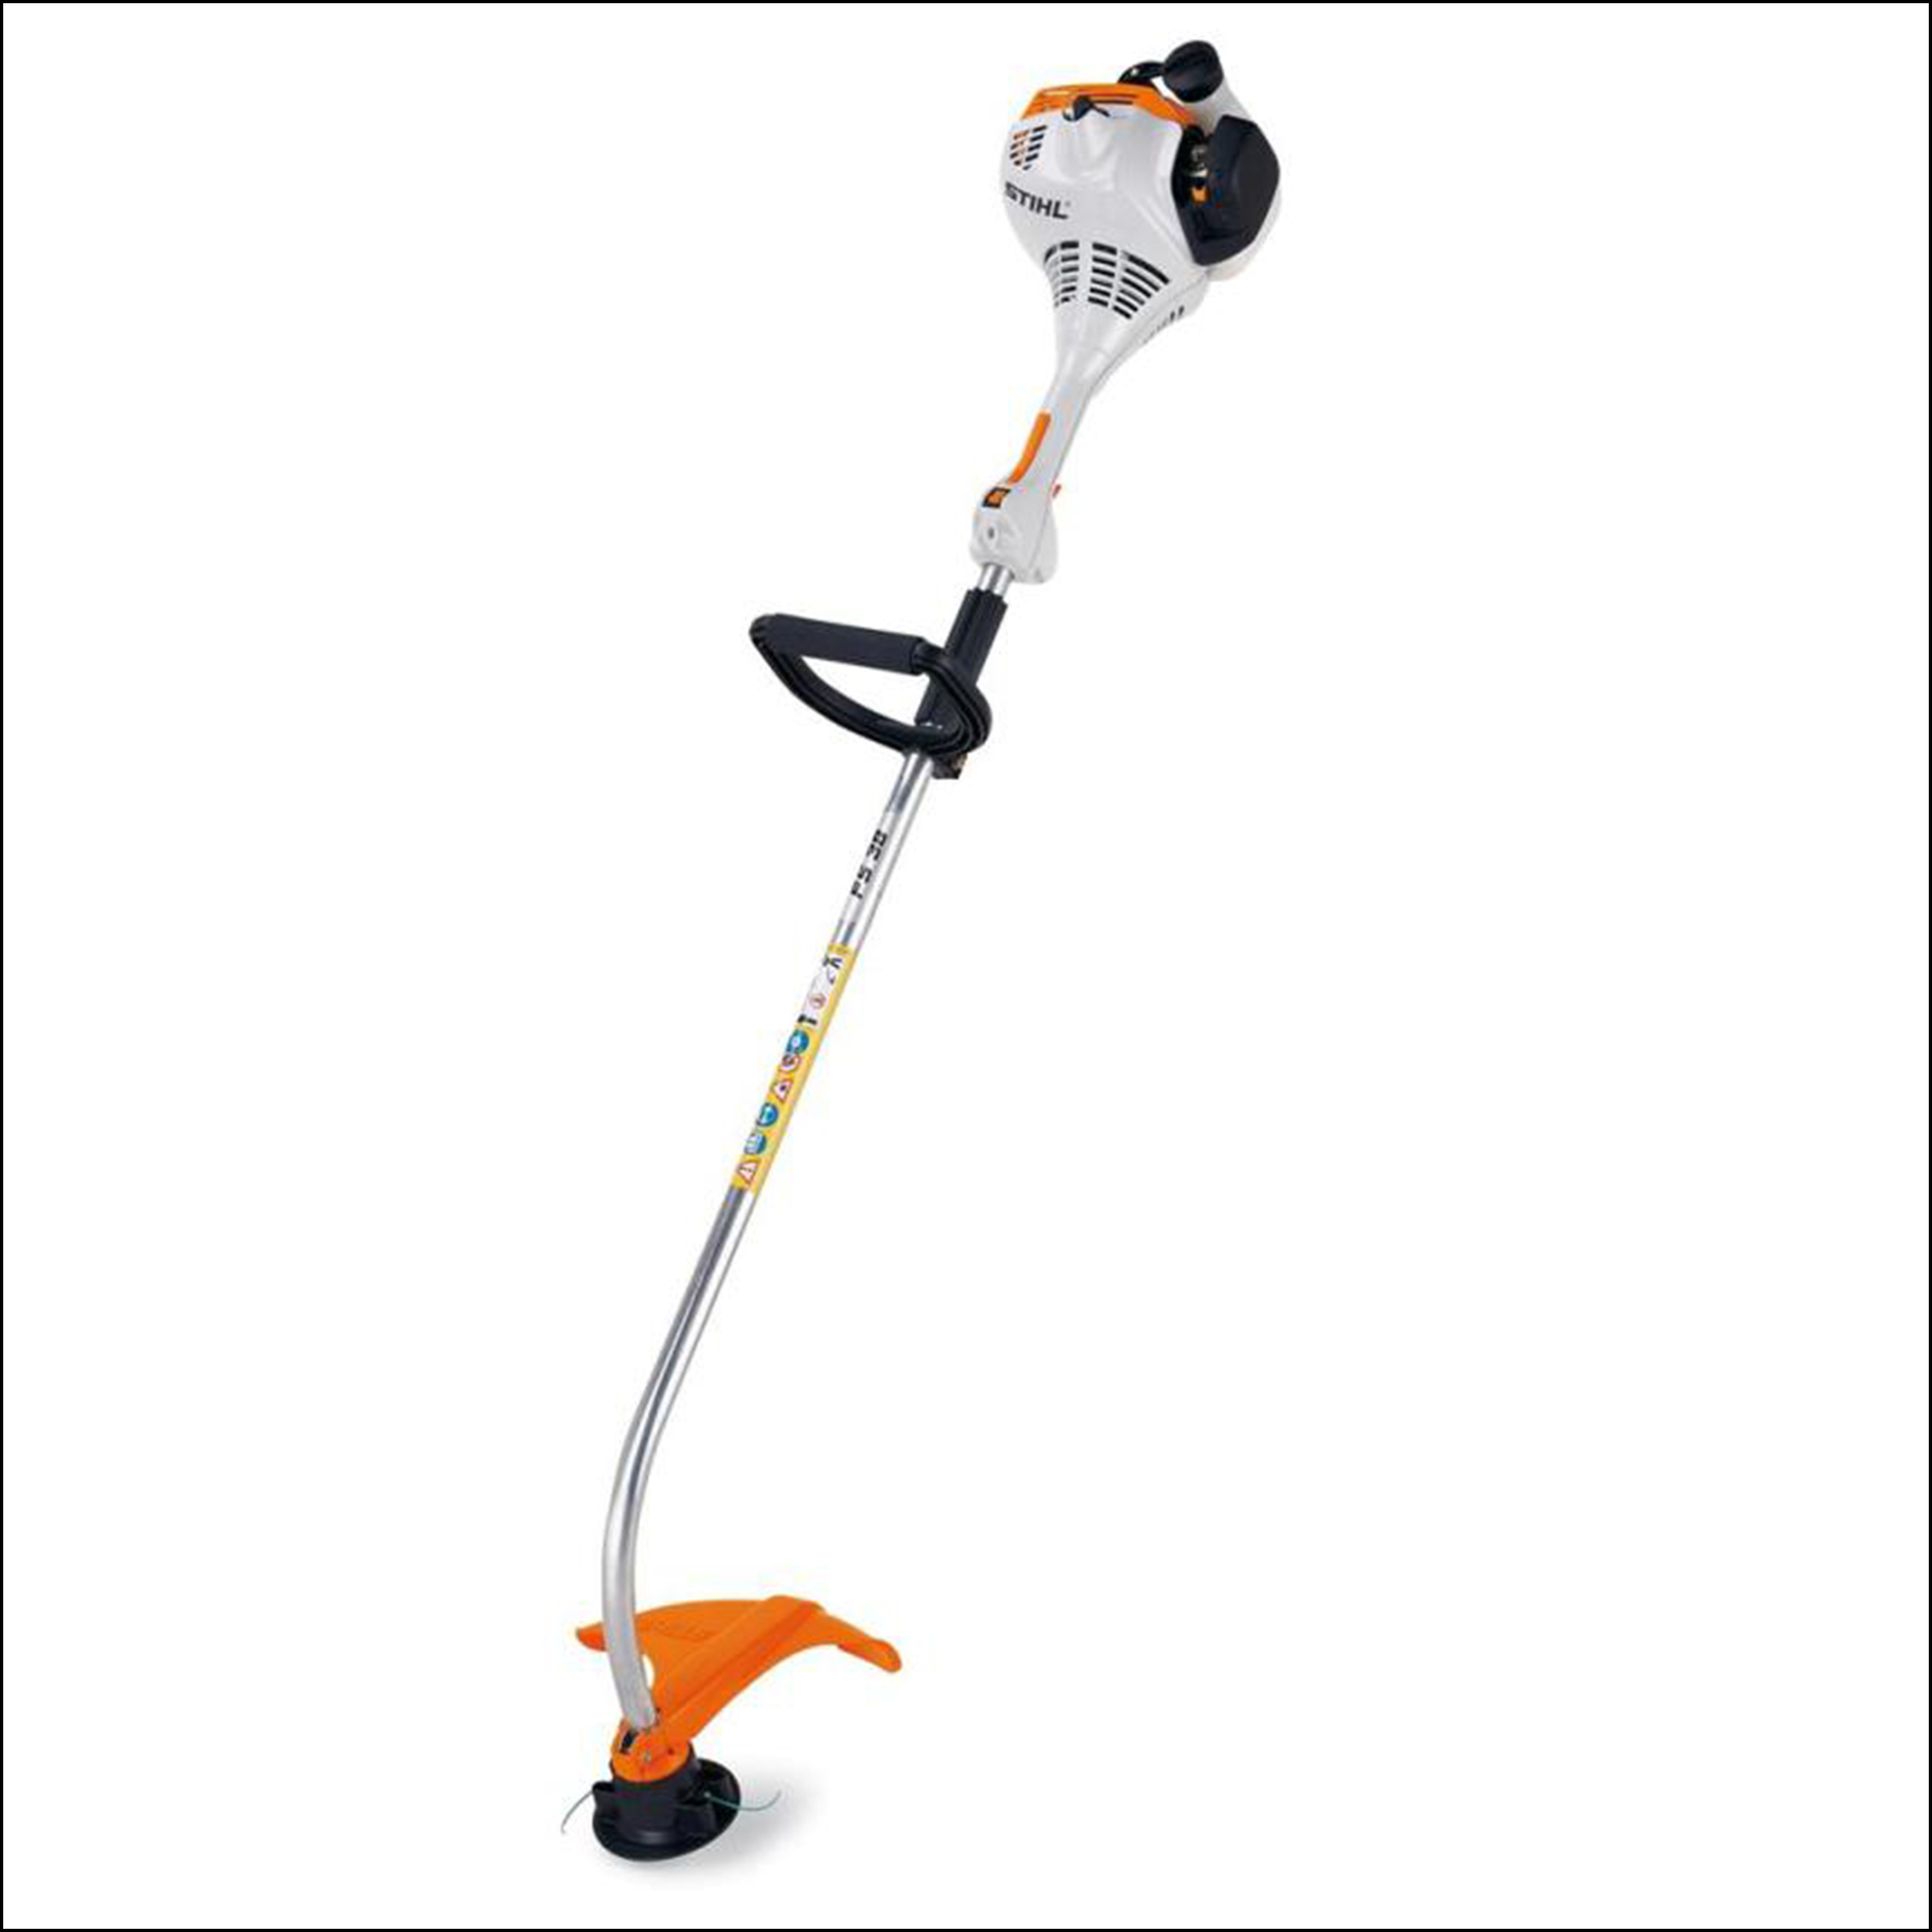 Stihl Weed Eaters For Sale